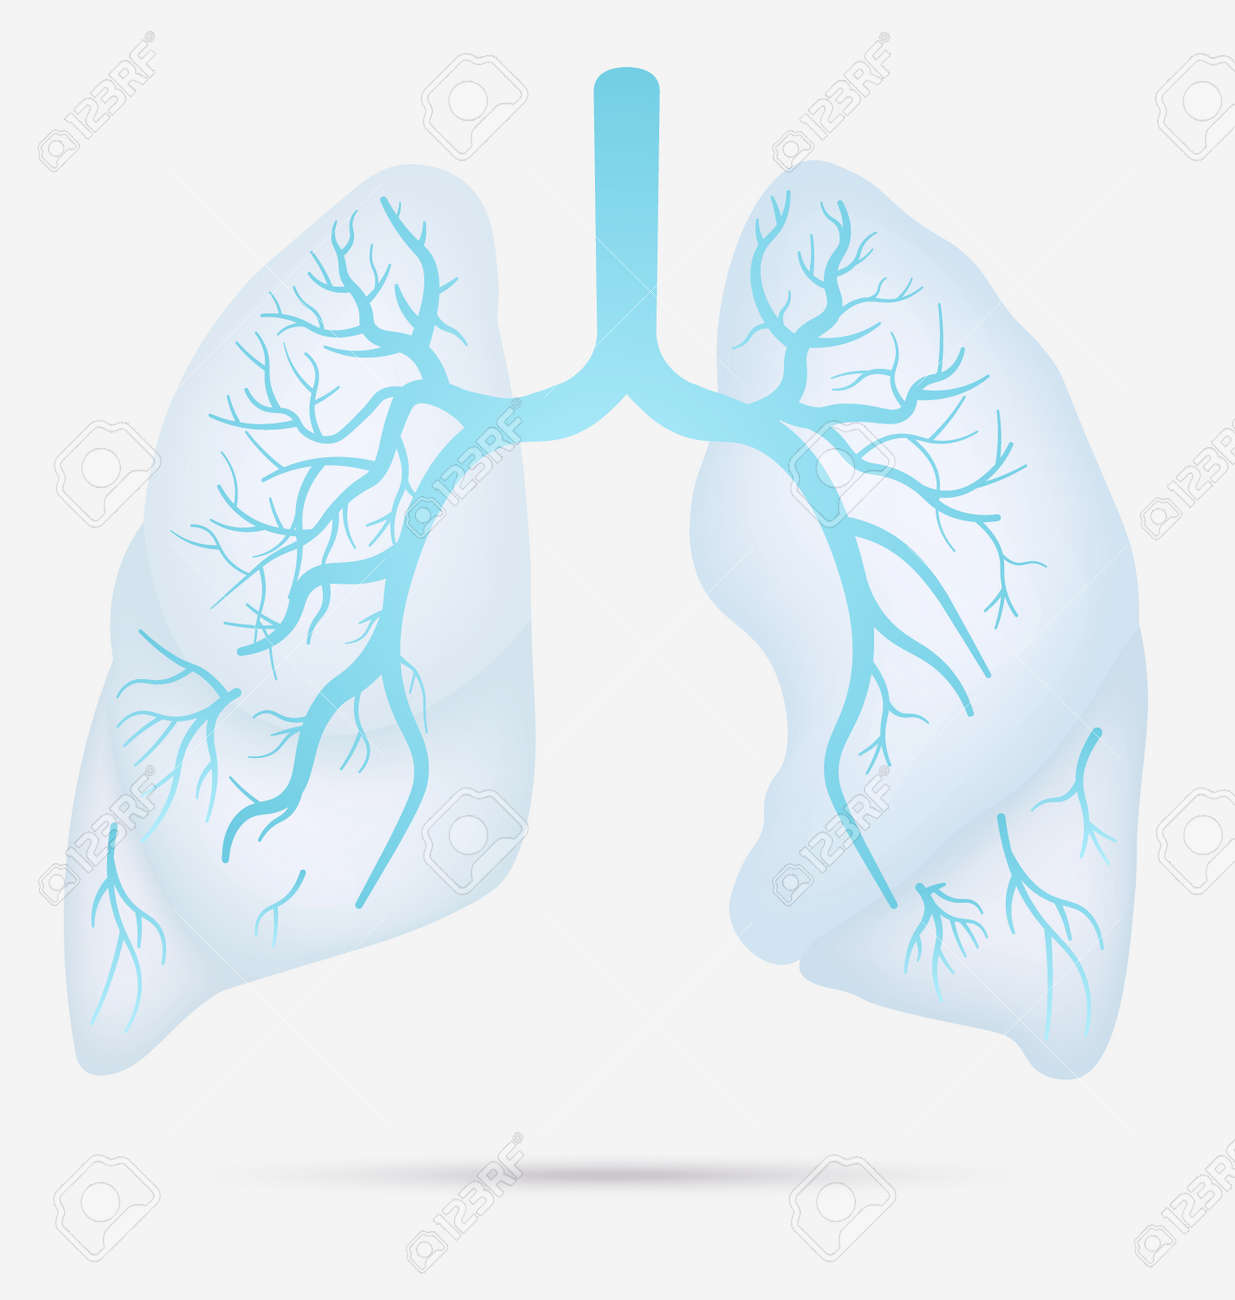 Human Lungs Anatomy For Asthma Tuberculosis Pneumonia Lung